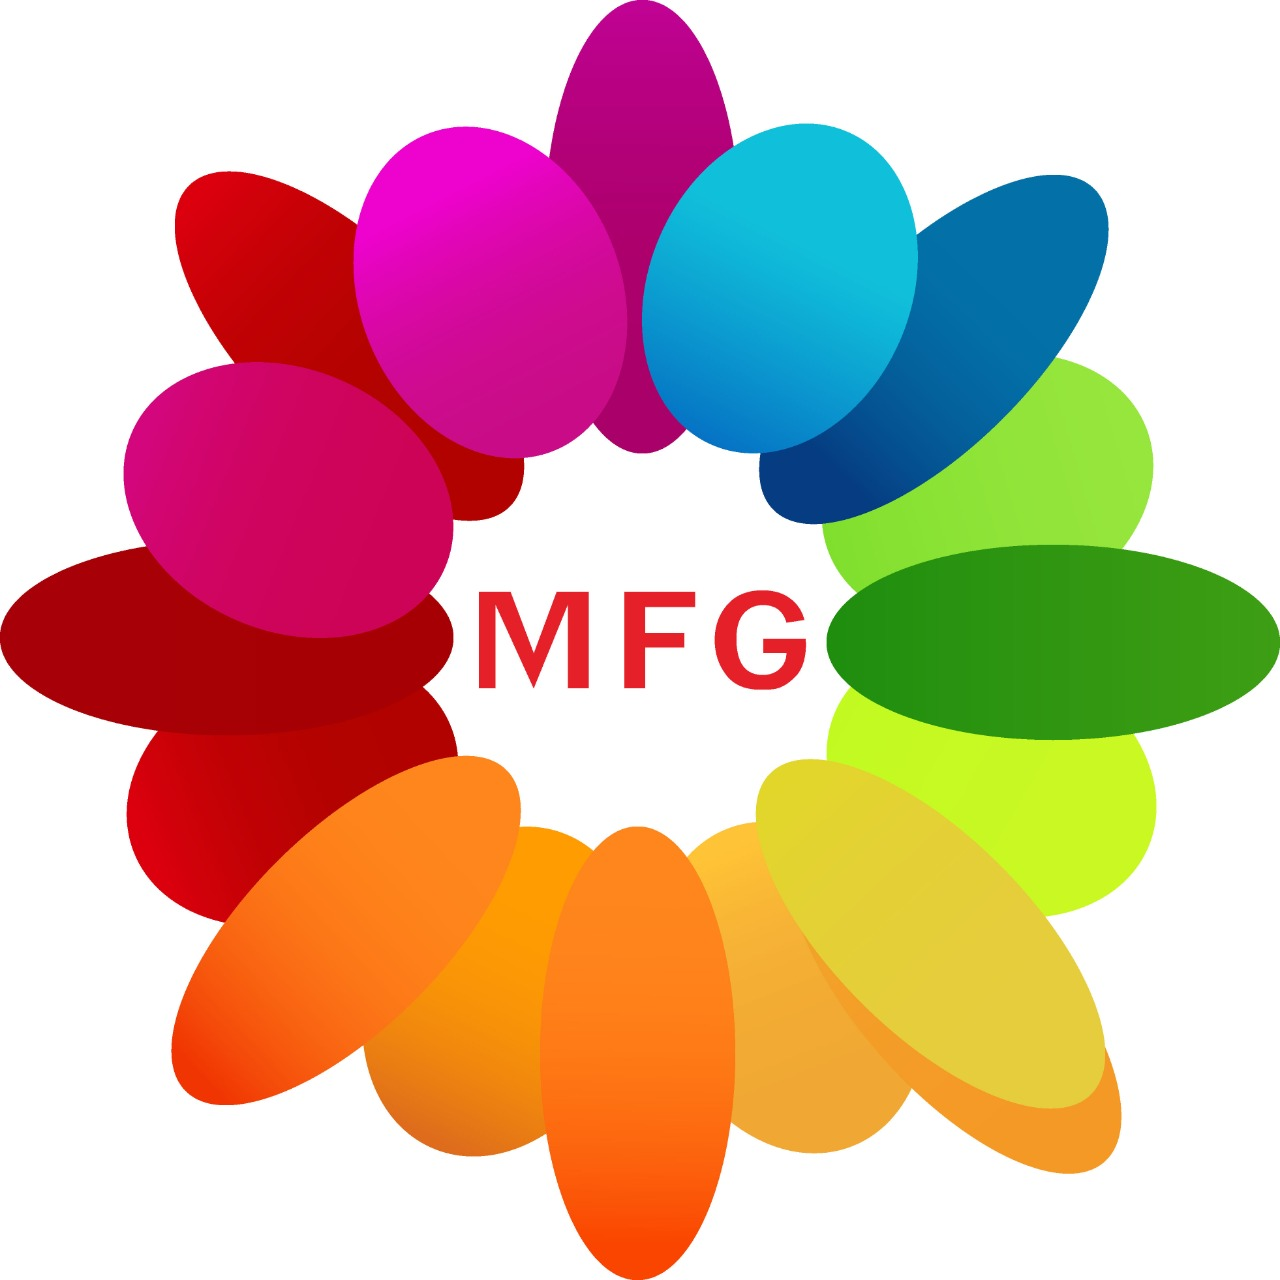 Bunch of 20 pink roses